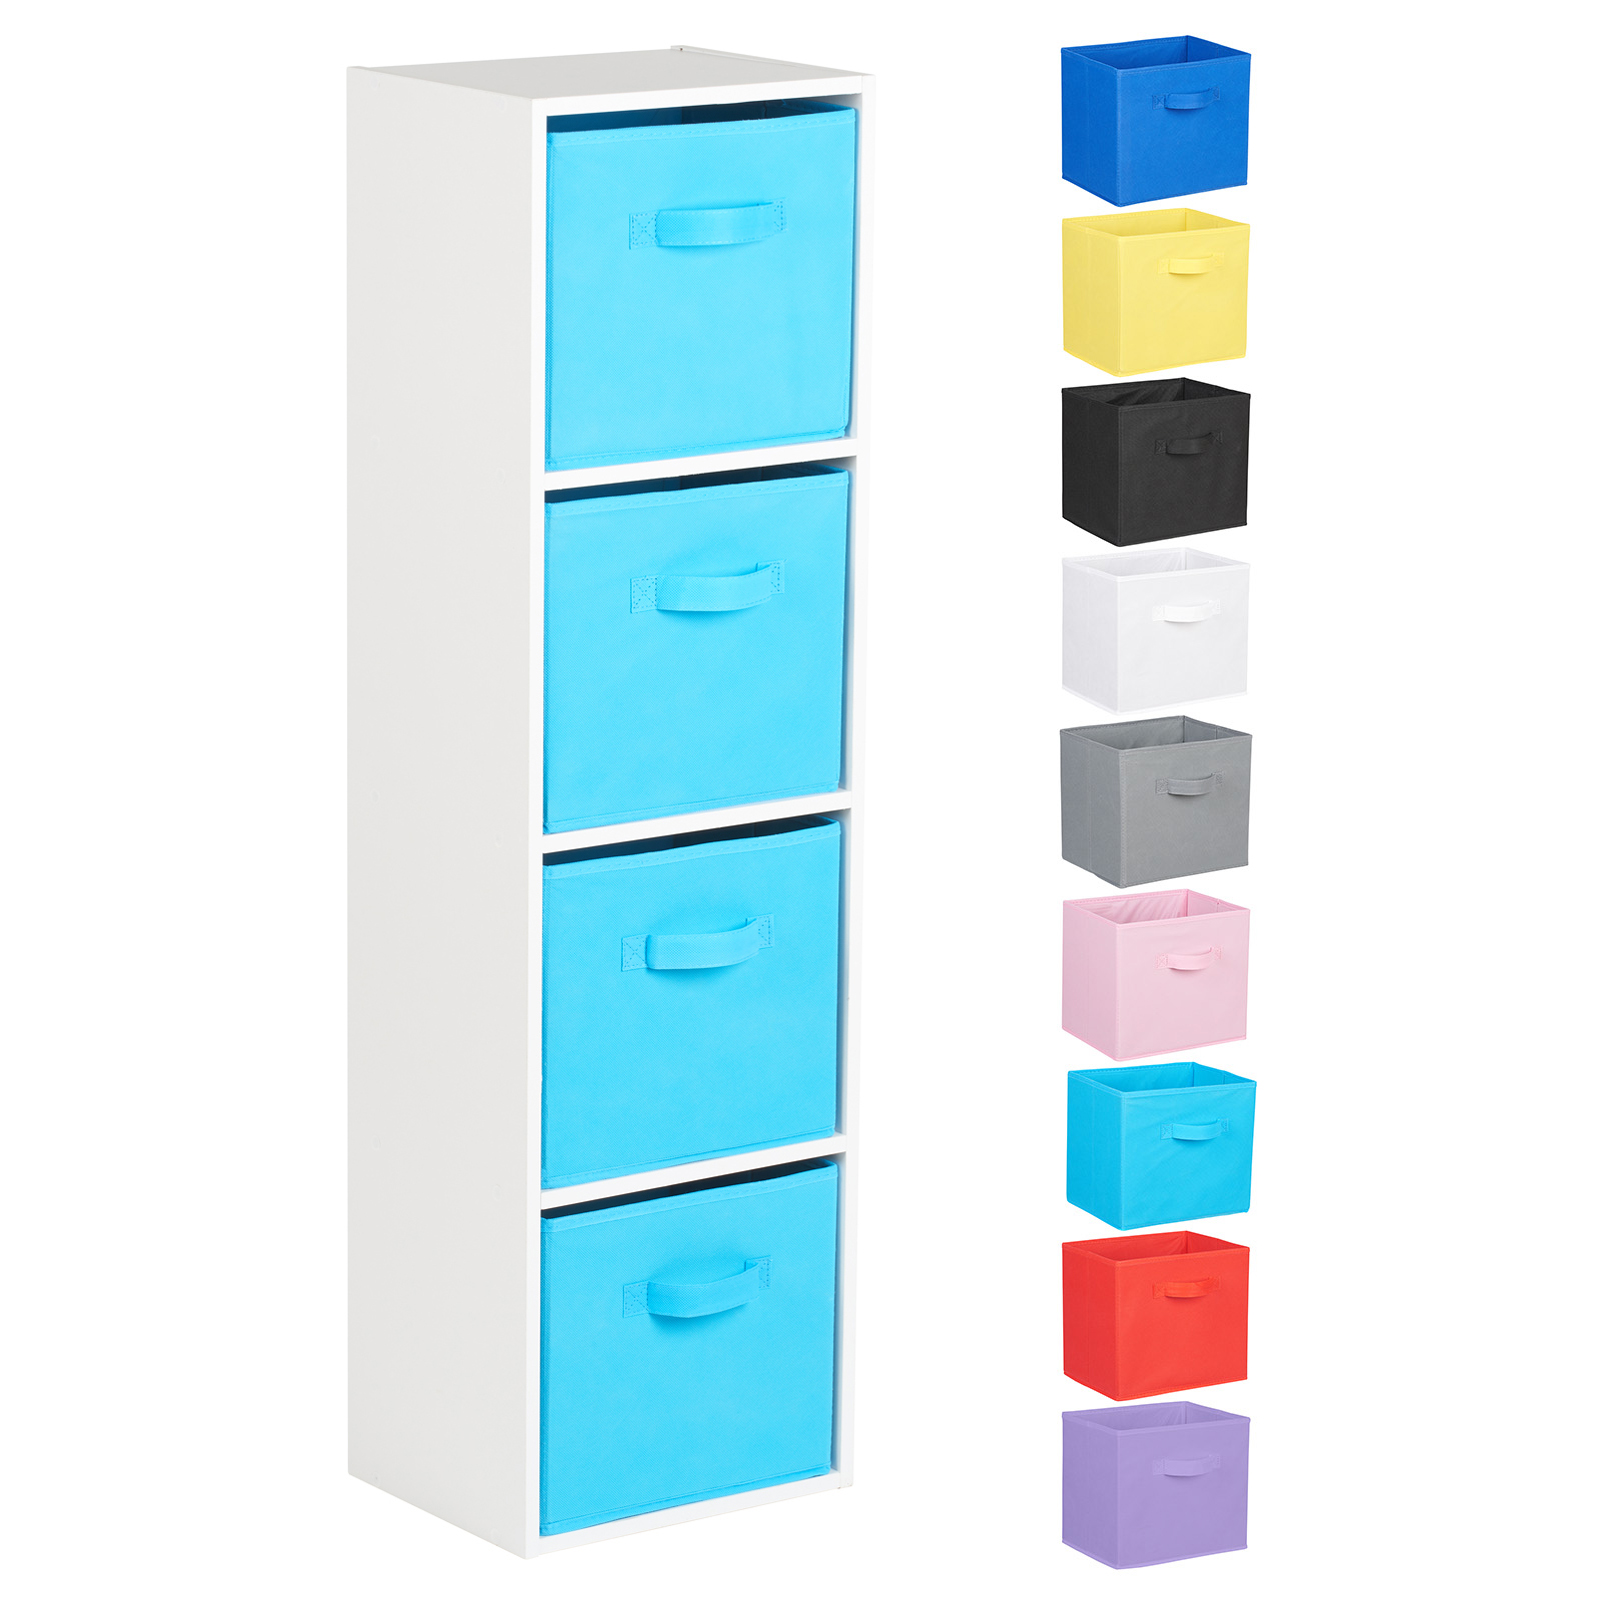 Hartleys-4-Tier-White-Bookcase-Wooden-Display-Shelving-Unit-amp-Fabric-Storage-Box thumbnail 24